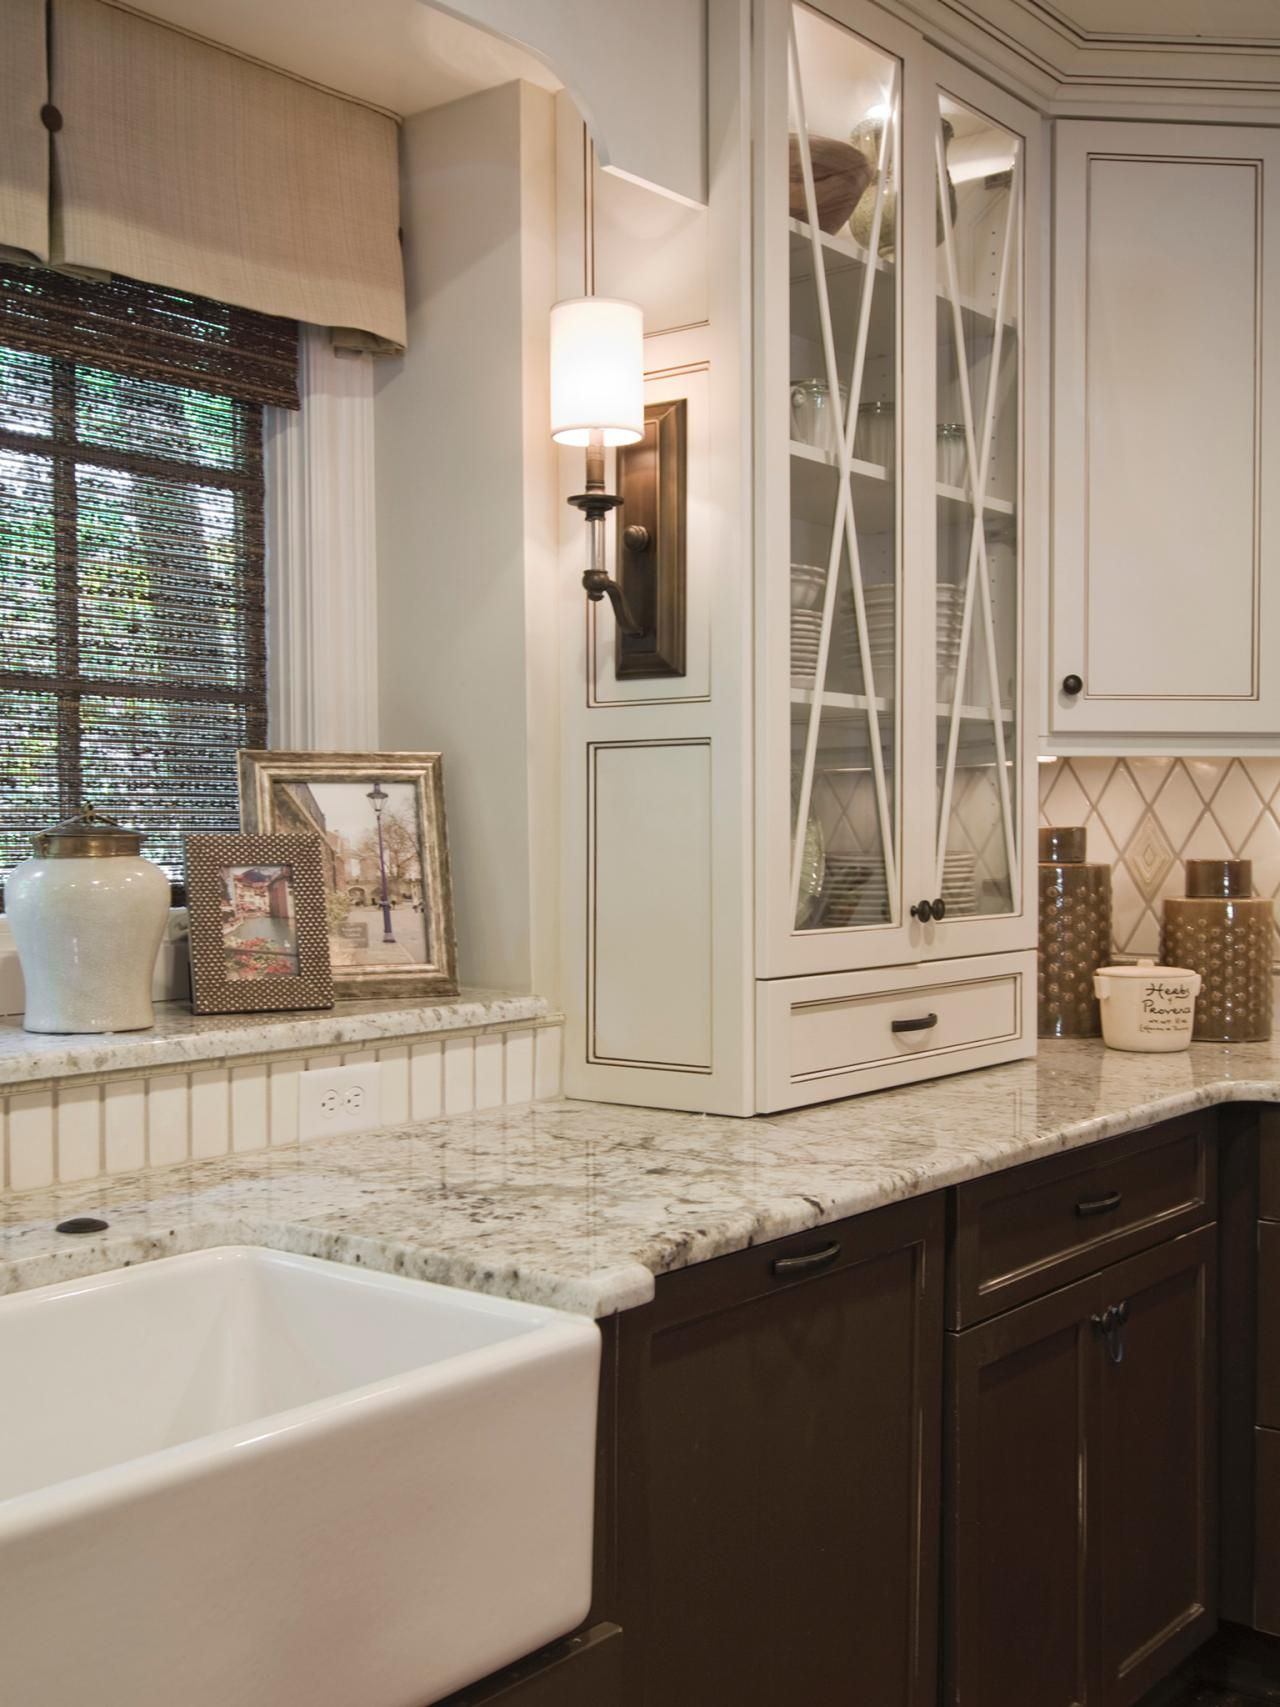 Country Kitchen Coral Springs Subtle Variations In Color Give This Kitchen A Natural Elegance